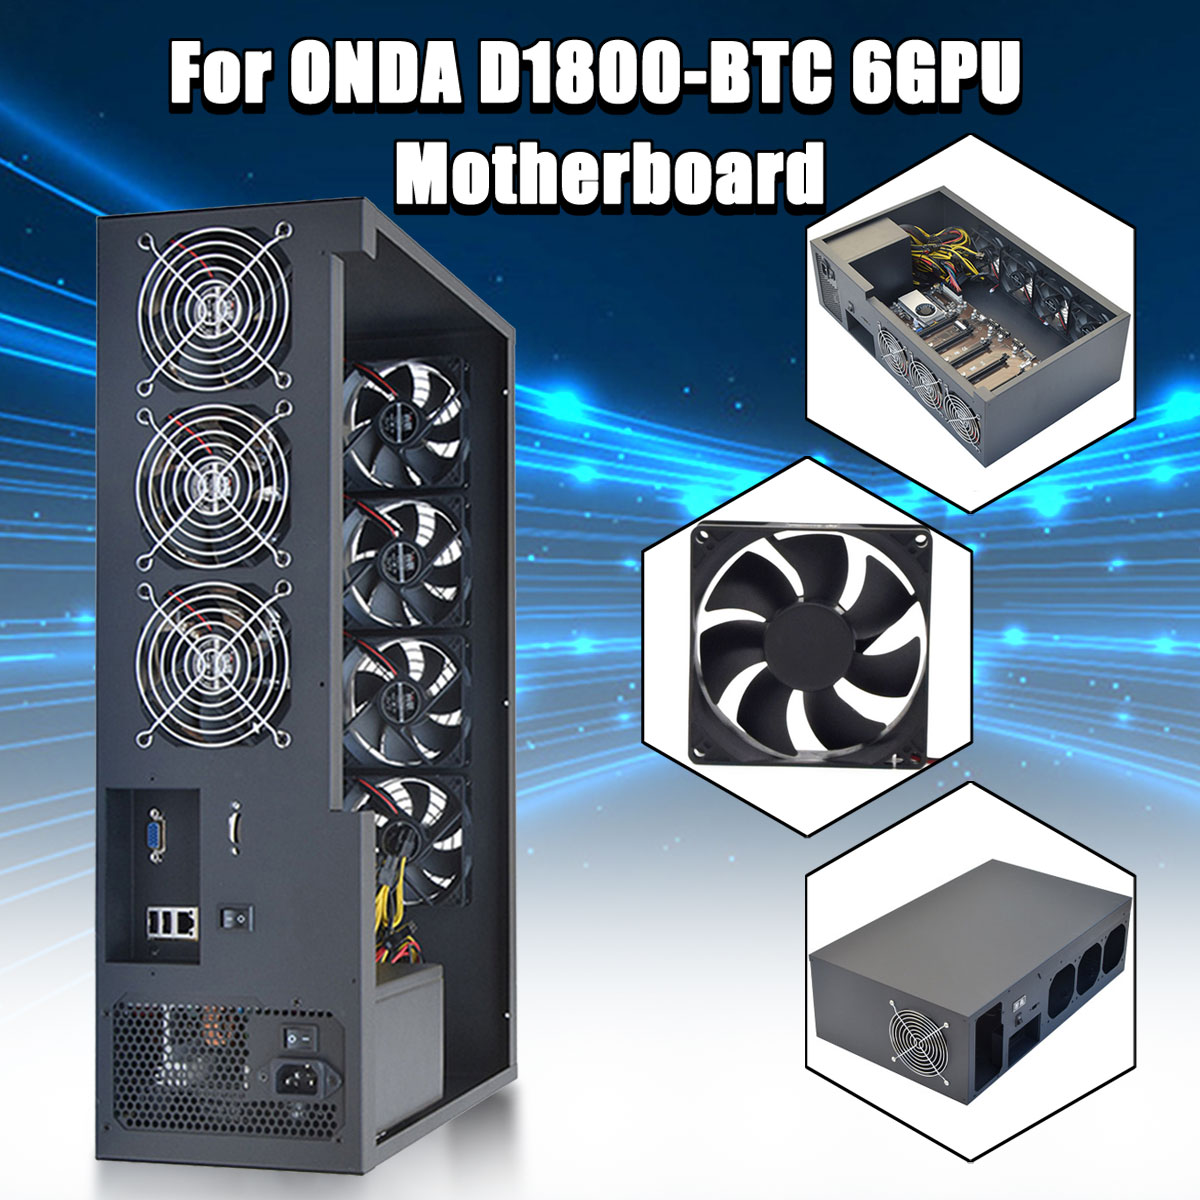 Open Air 6GPU Crypto Coin Mining Server Frame Rig Graphics Case /with 7 Fans Optional Computer Mining Case Frame Server Chassis 1stplayer md8 mining case 8 gpu crypto coin open air mining frame rig graphics case support 4 fans for onda d3 motherboard